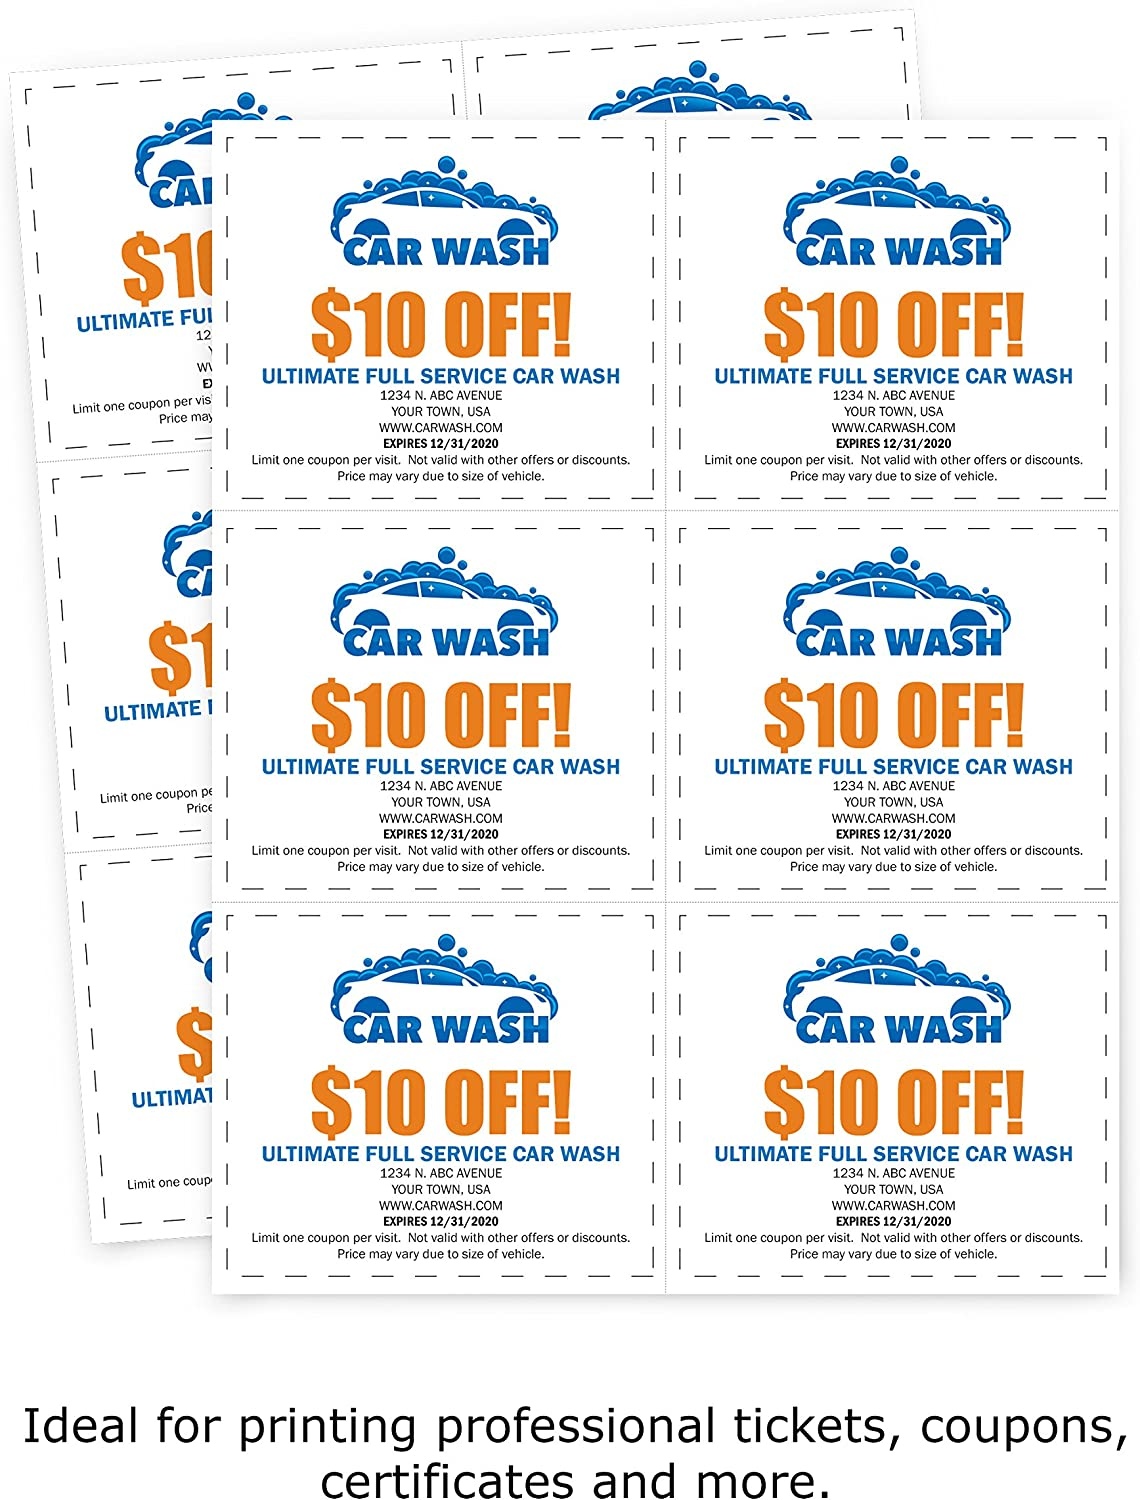 Amazon Com Printworks Professional Perforated Paper For Tickets Coupons Certificates And More 8 5 X 11 24 Lb 3 Perfs 3 2 3 And 7 1 3 From Bottom 4 1 4 From Left 500 Sheets White 04334 Office Products